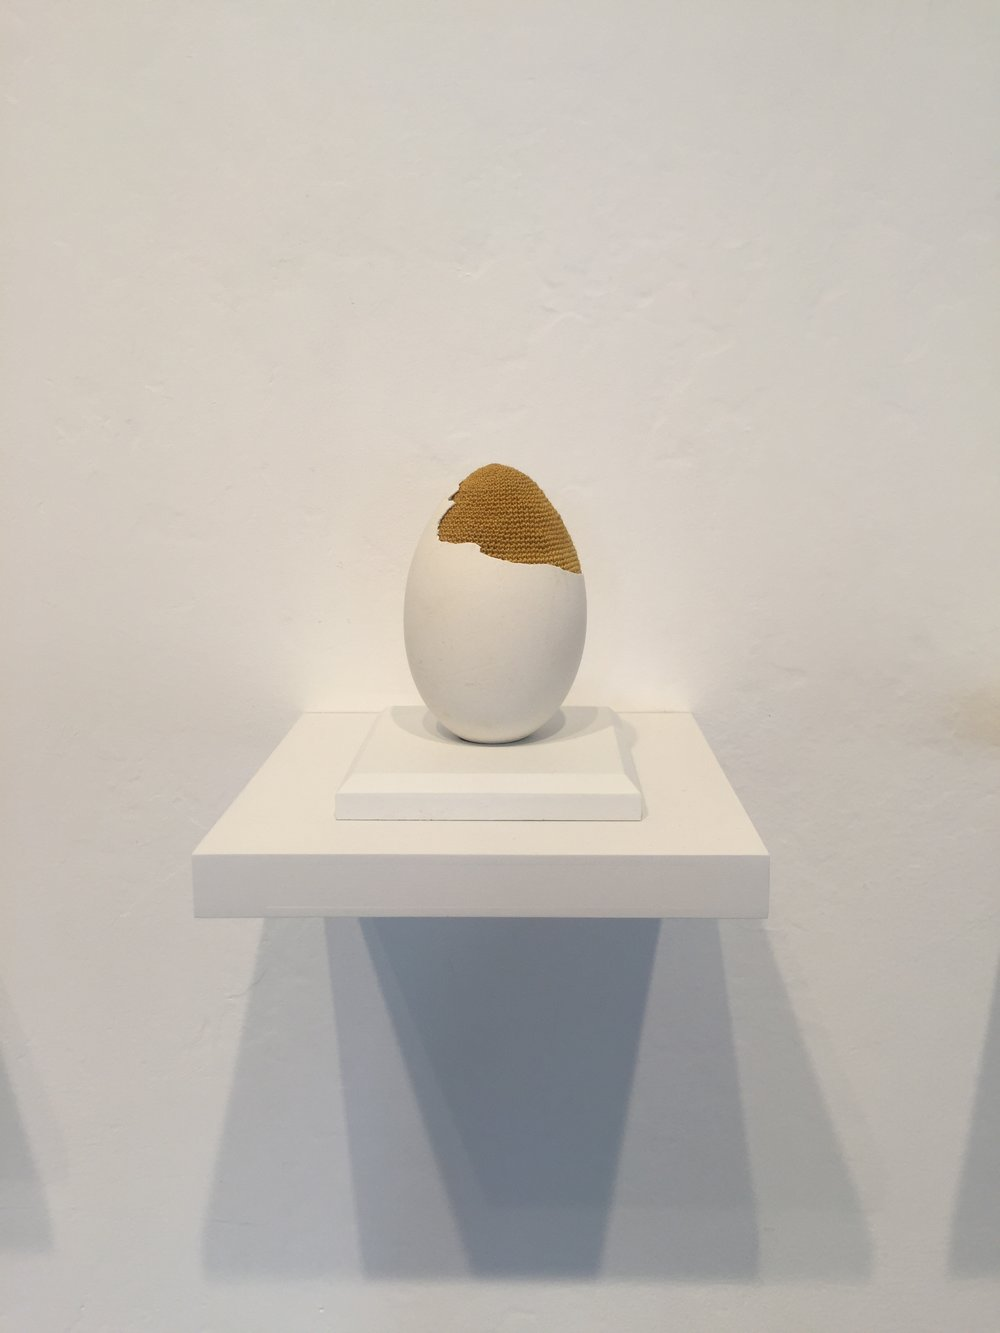 """Esther Traugot, """"Patched Goose Egg #6,"""" 2018, goose egg shell, dyed cotton string, wood mount and shelf, 4.75 x 6 x 6 inches"""